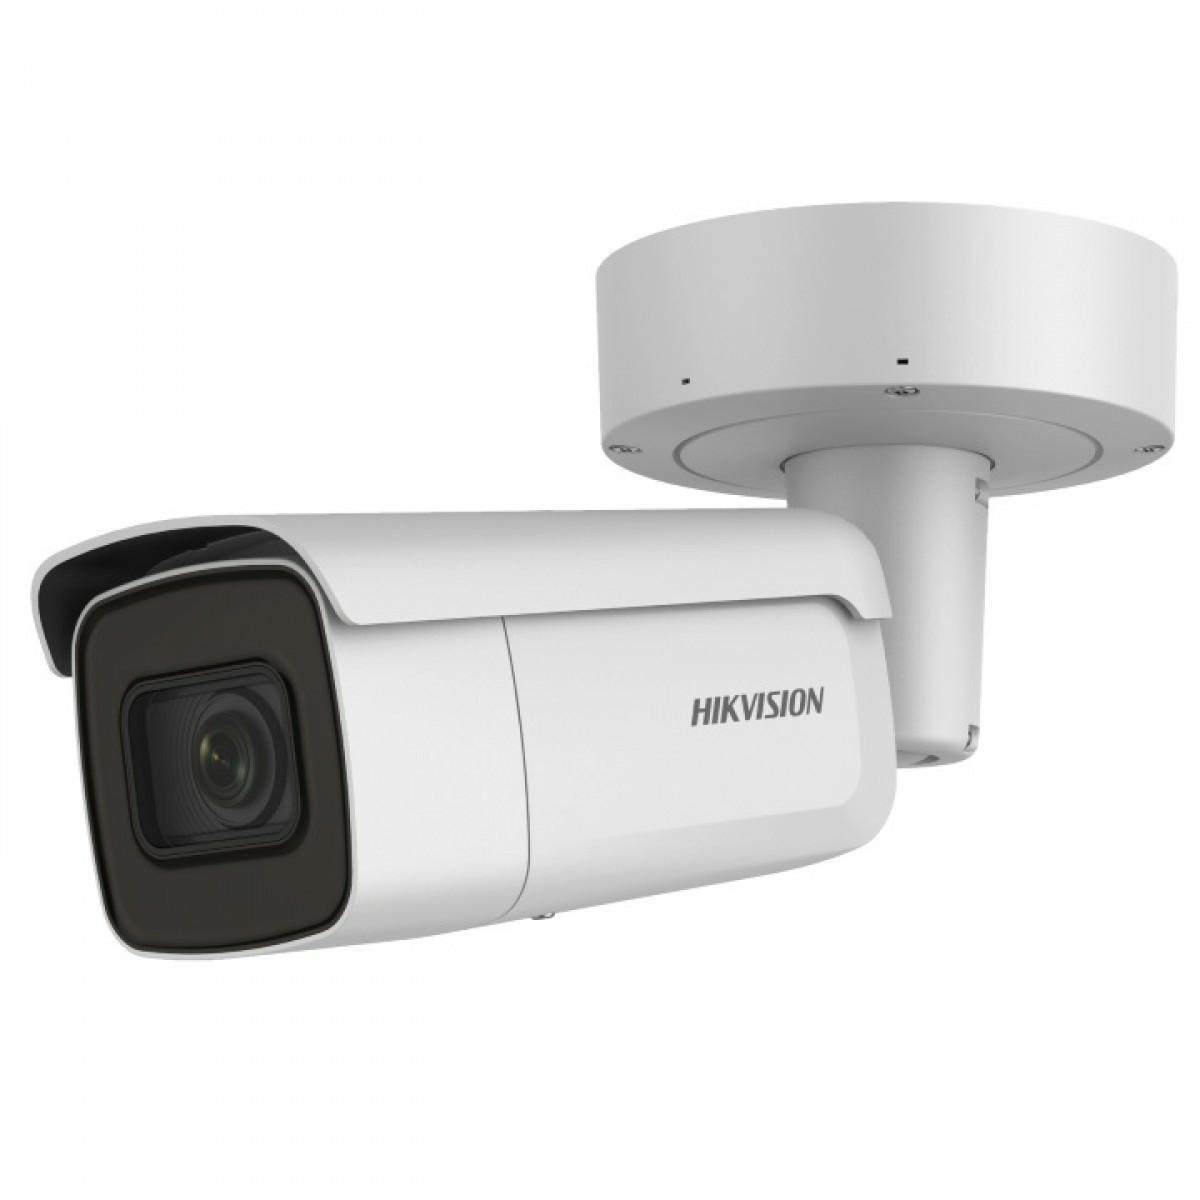 SICE Distributore Ufficiale  TELECAMERE IP Bullet IP 4K 2,8-12mm Varifocal 1/2.5″ CMOS ICR   DS-2CD2685FWDIZS